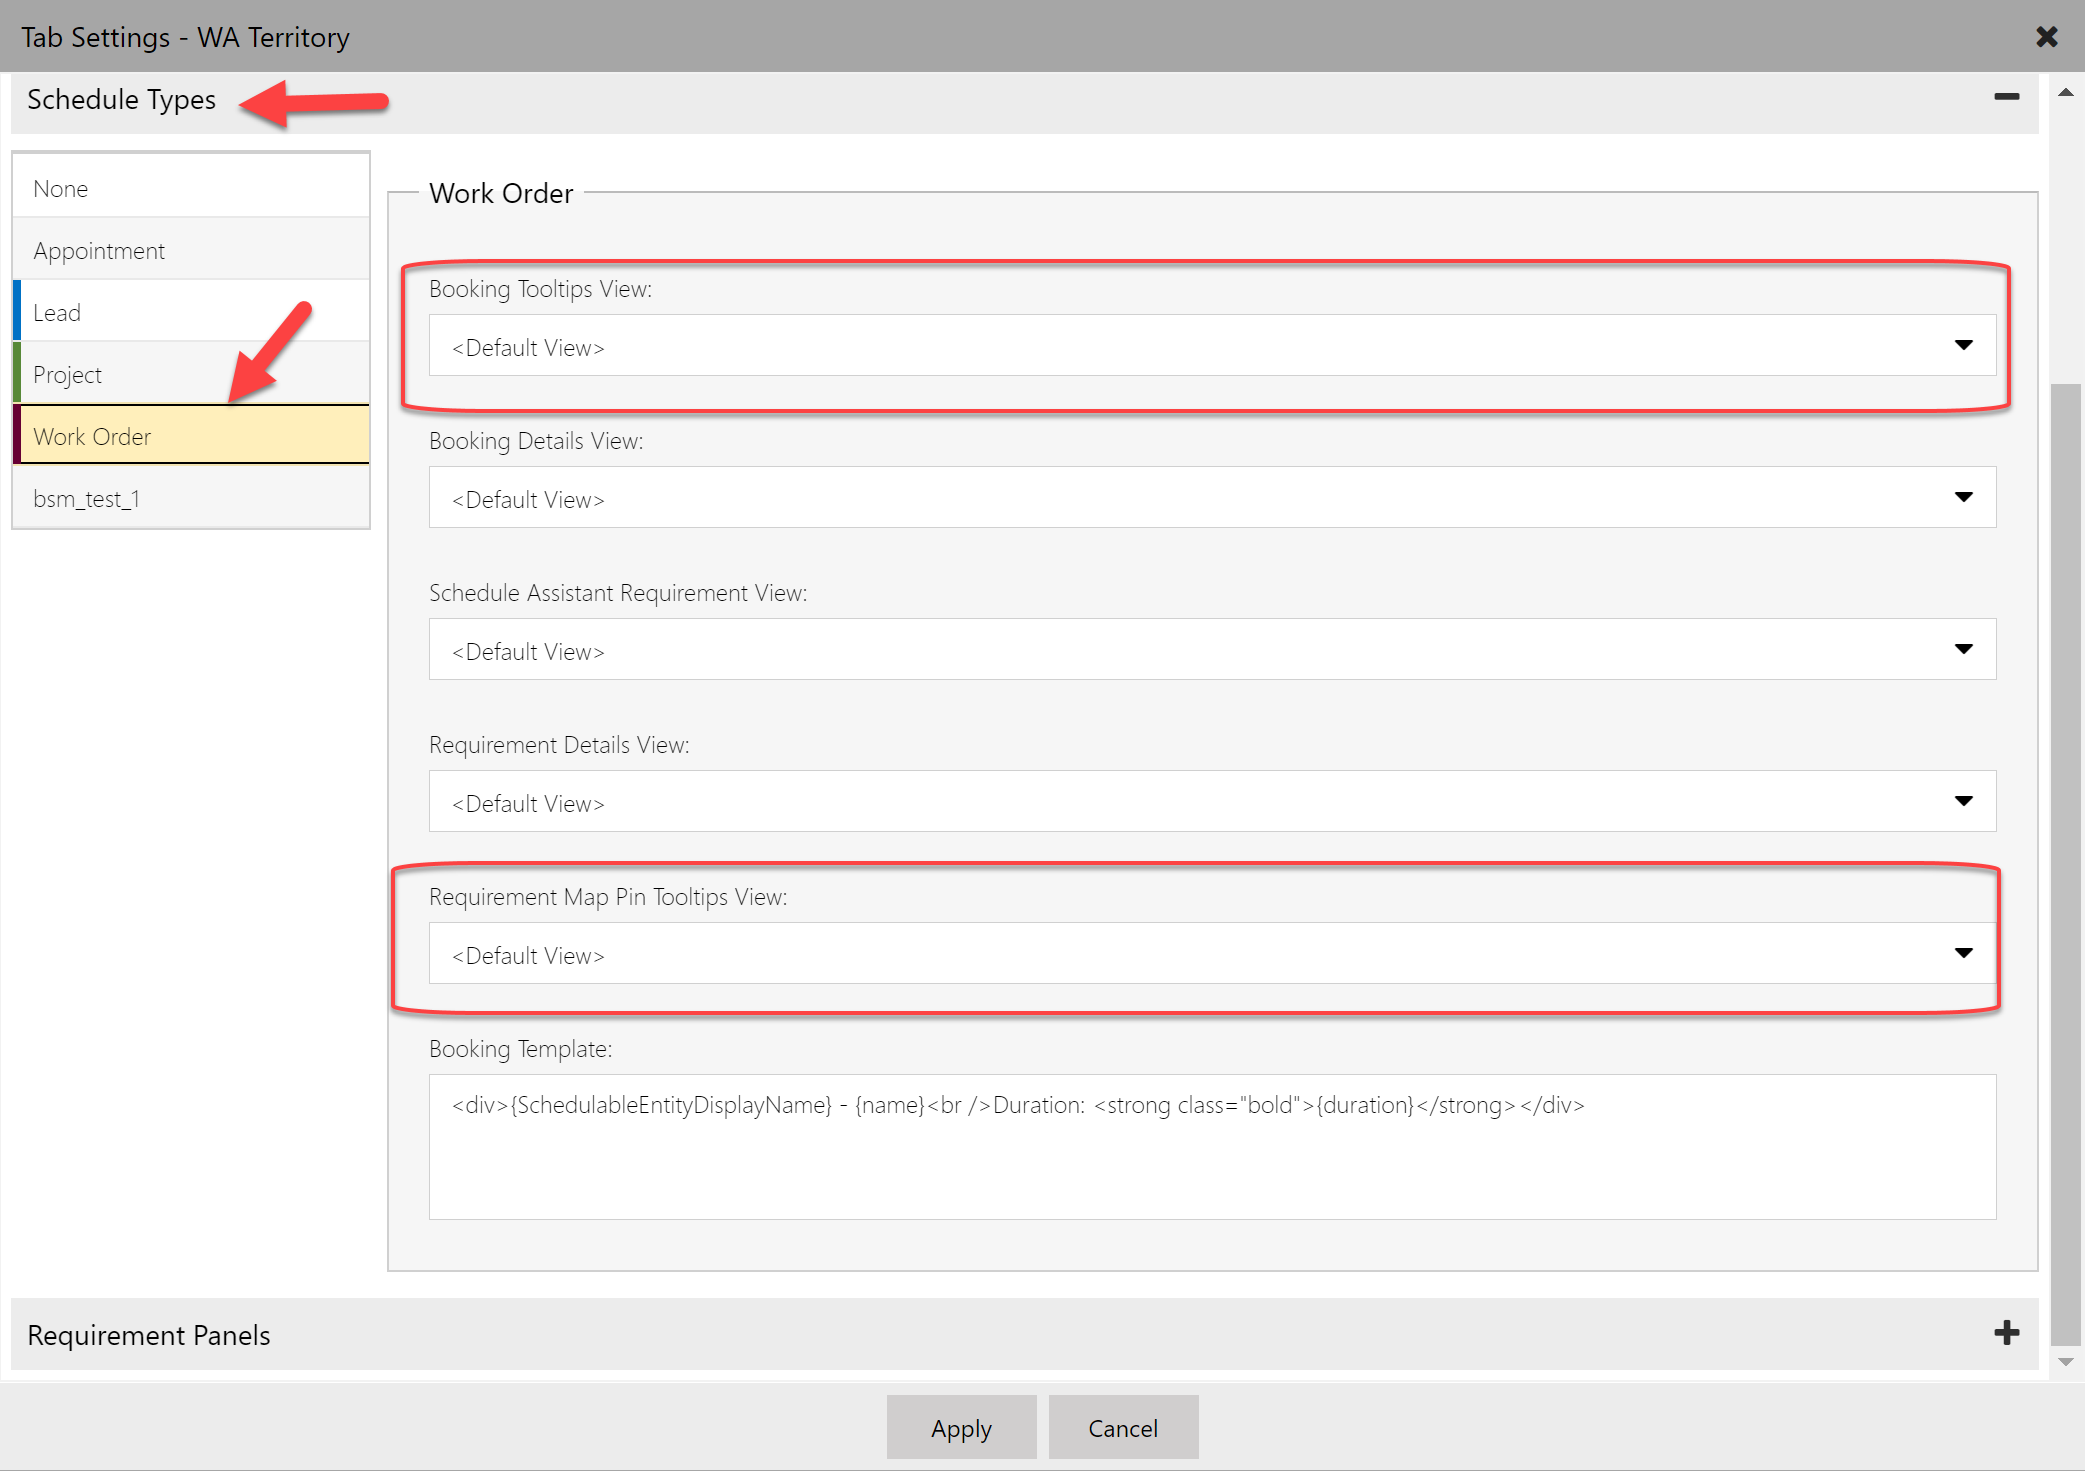 Schedule board settings in the schedule types section allowing you to change the view driving the tooltips for bookings and requirements.